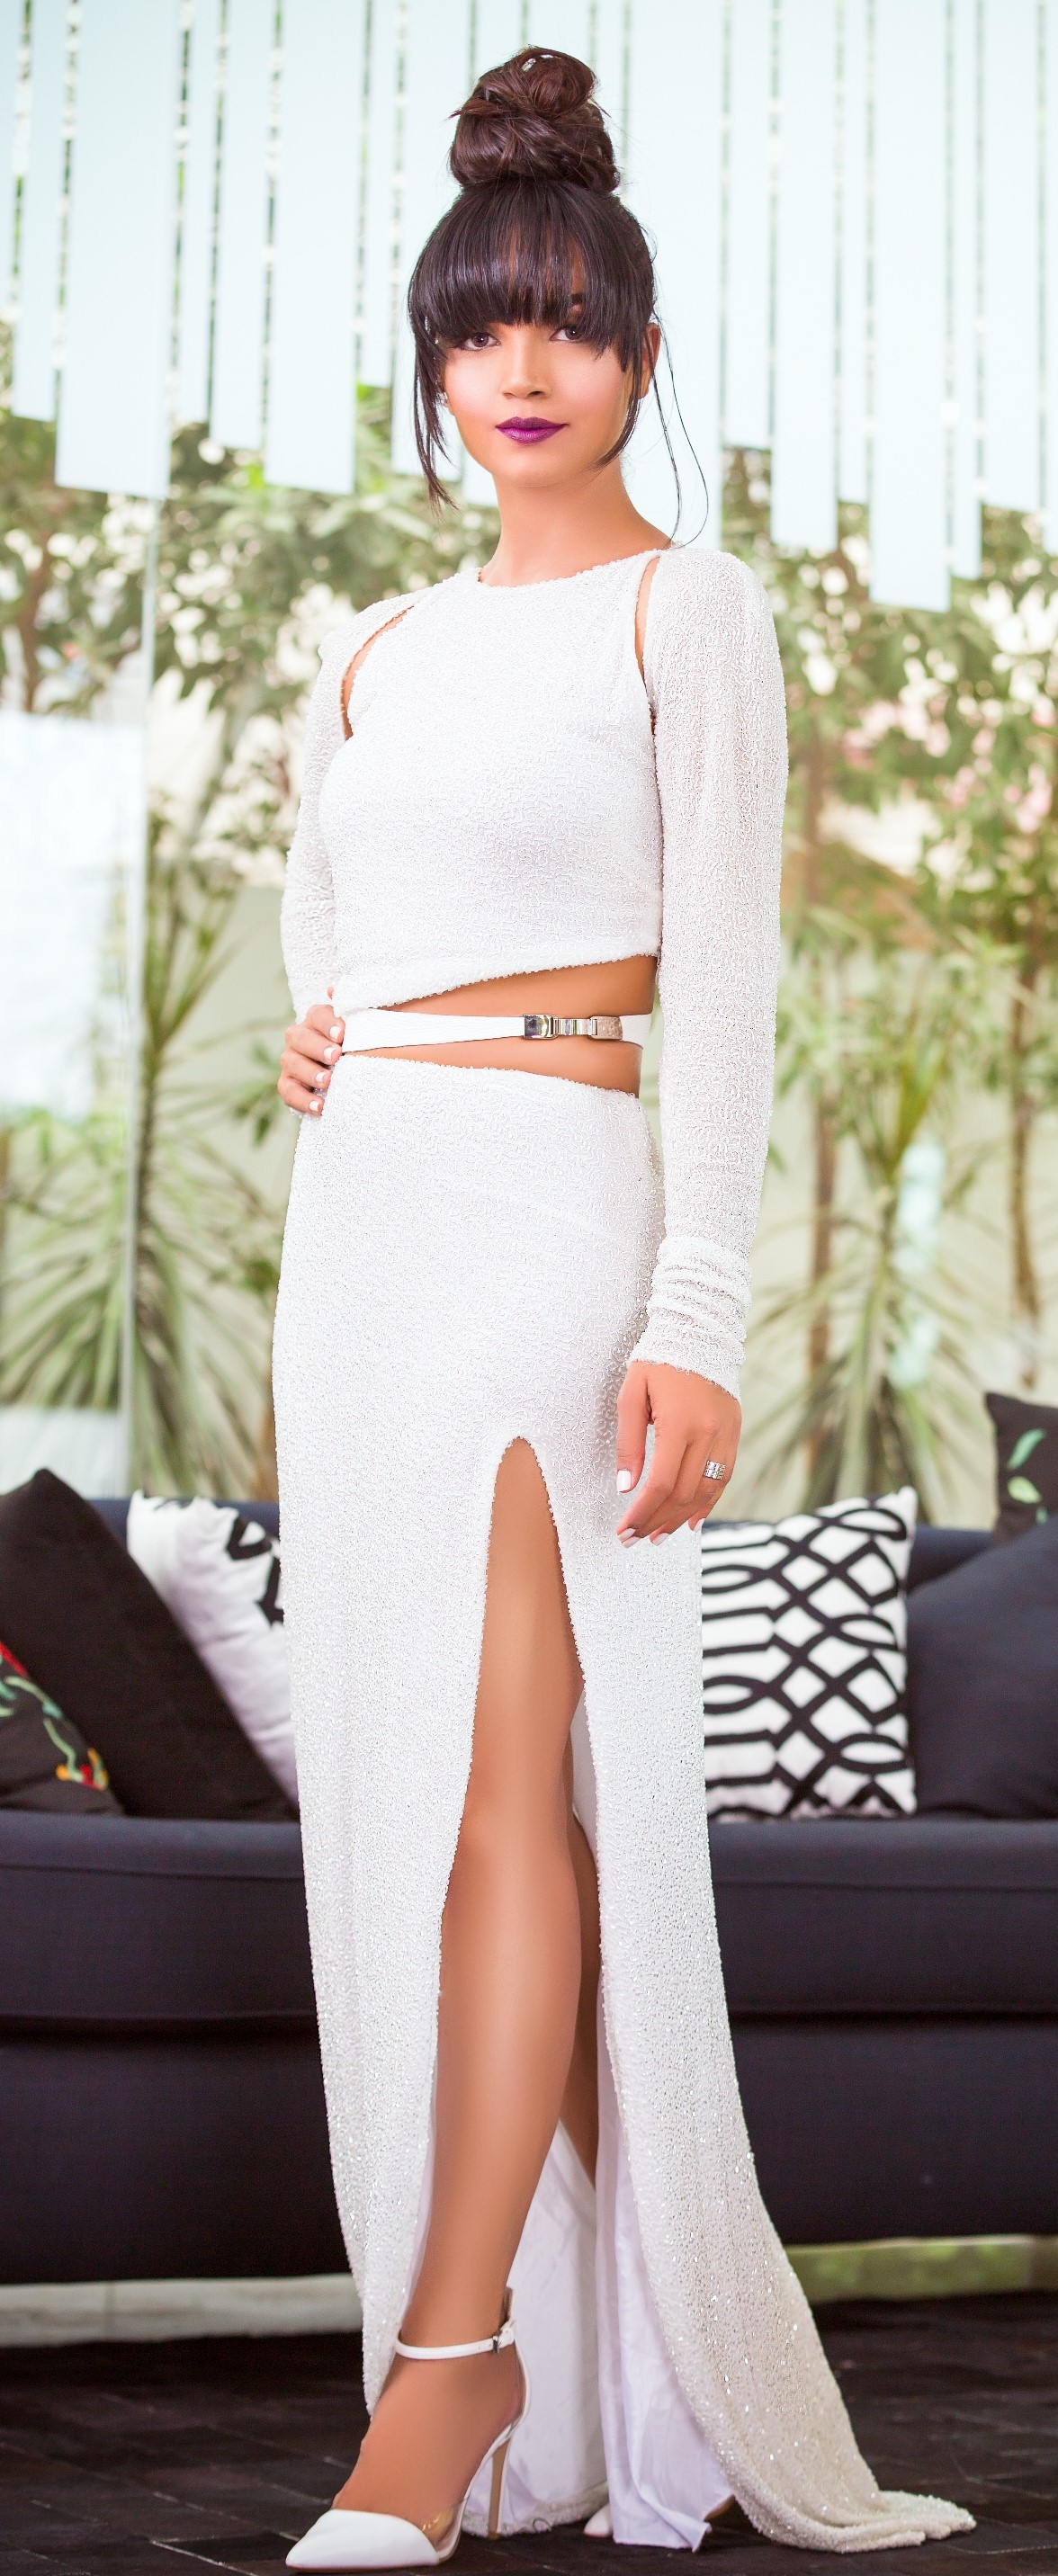 ethereal-in-this-all-white-number